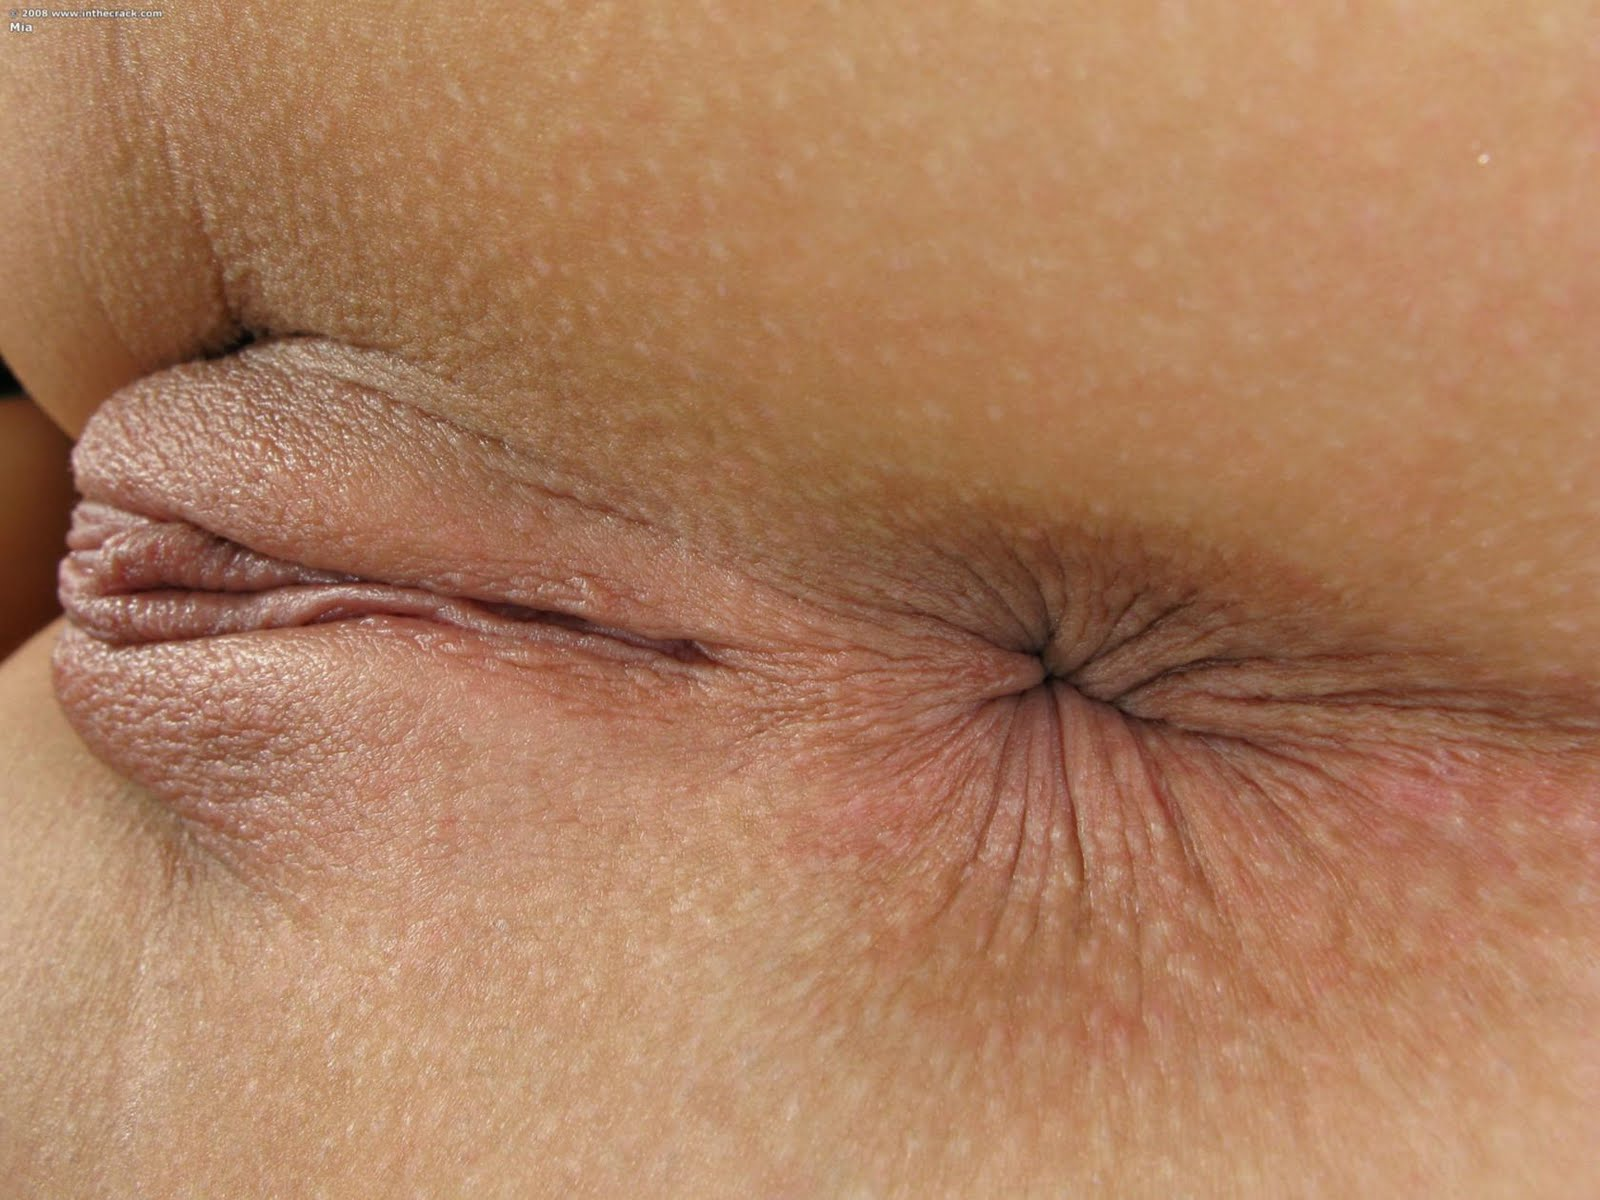 Obscene pussy close up pic